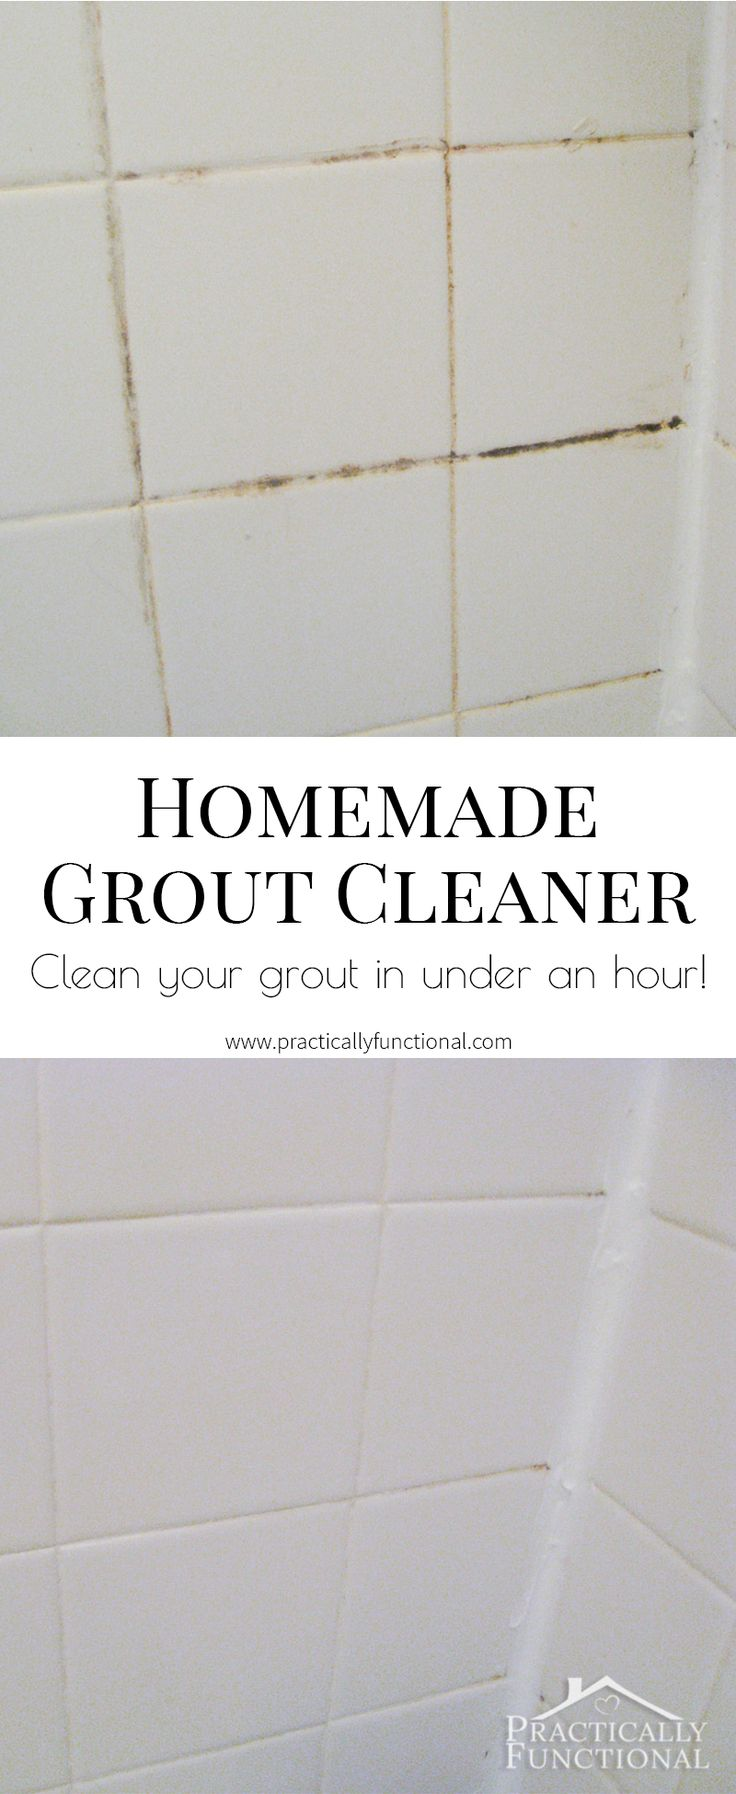 This homemade grout cleaner is such a great way to clean tile grout; all you need is bleach and baking soda!